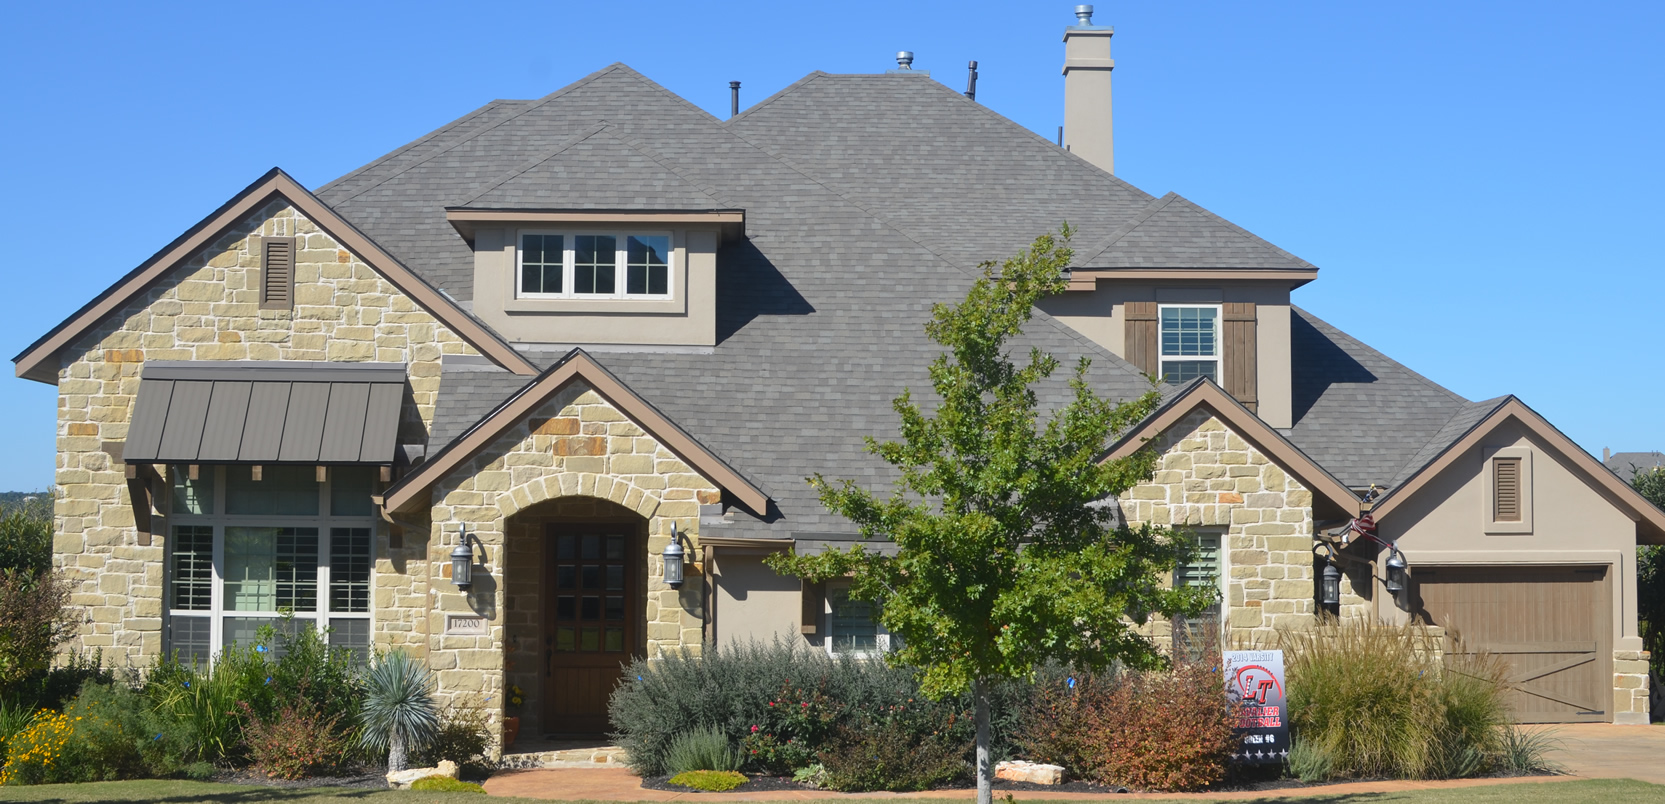 Composition Roof & Platinum Roofing Texas| Residential - Composition Shingles memphite.com